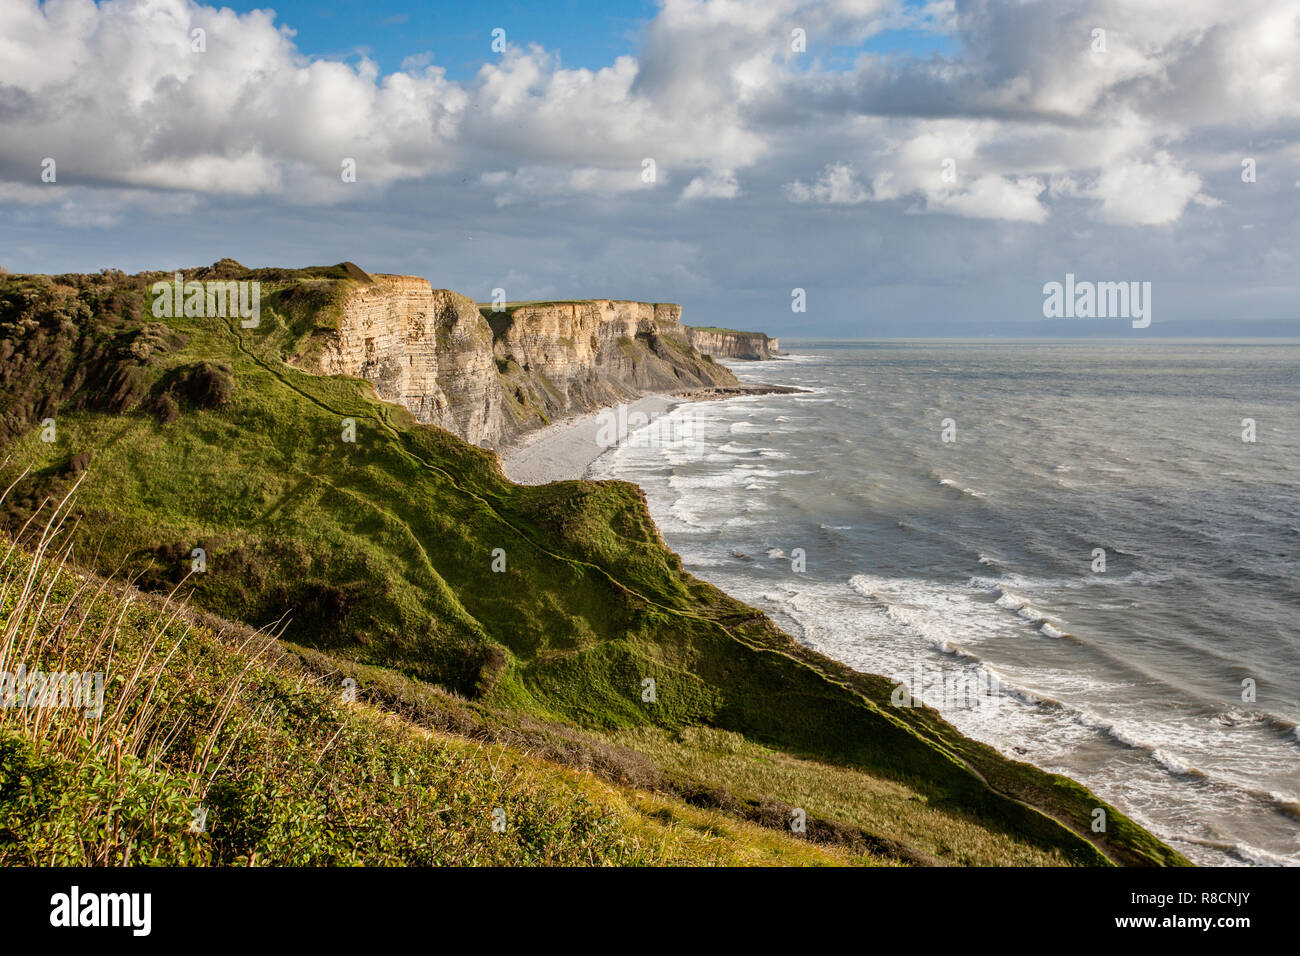 Jurassic lias limestone cliffs of the Glamorgan Heritage Coast in South Wales UK - Stock Image